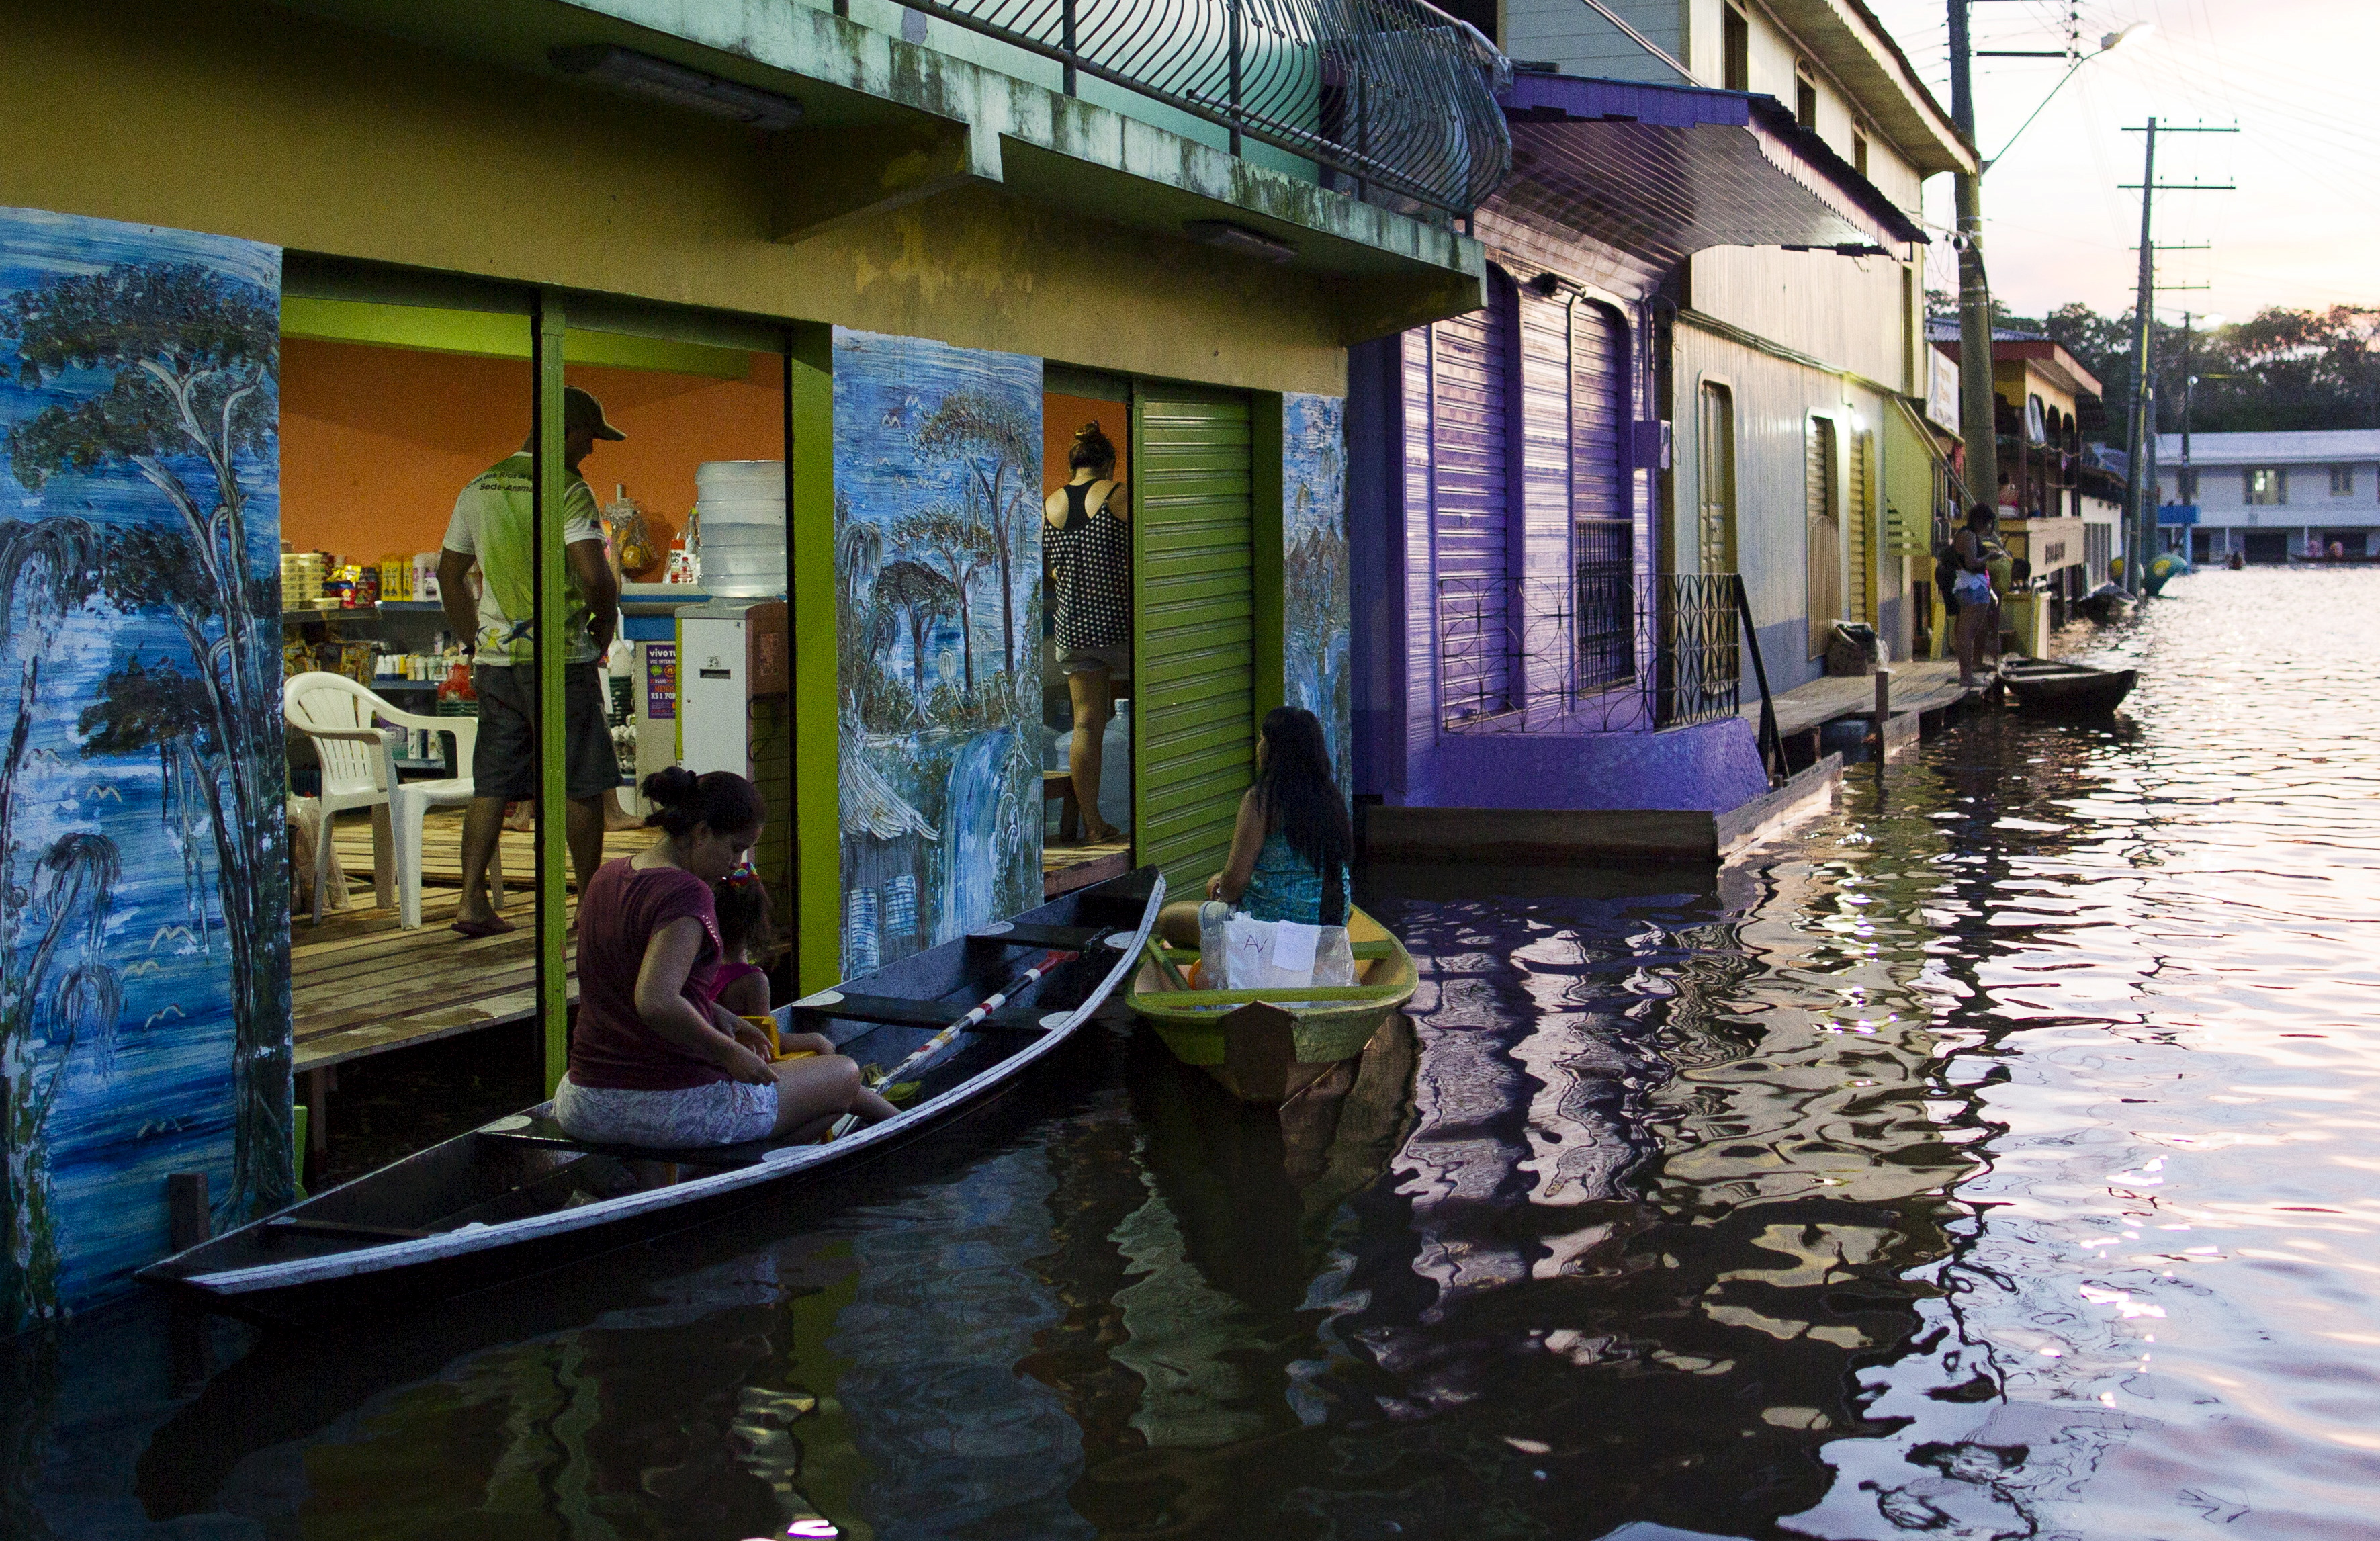 Residents canoed to a market in a street flooded by the rising Rio Solimoes, one of the two main branches of the Amazon River, in Anama, Amazonas state, Brazil on June 3, 2015. Photo by Bruno Kelly/Reuters